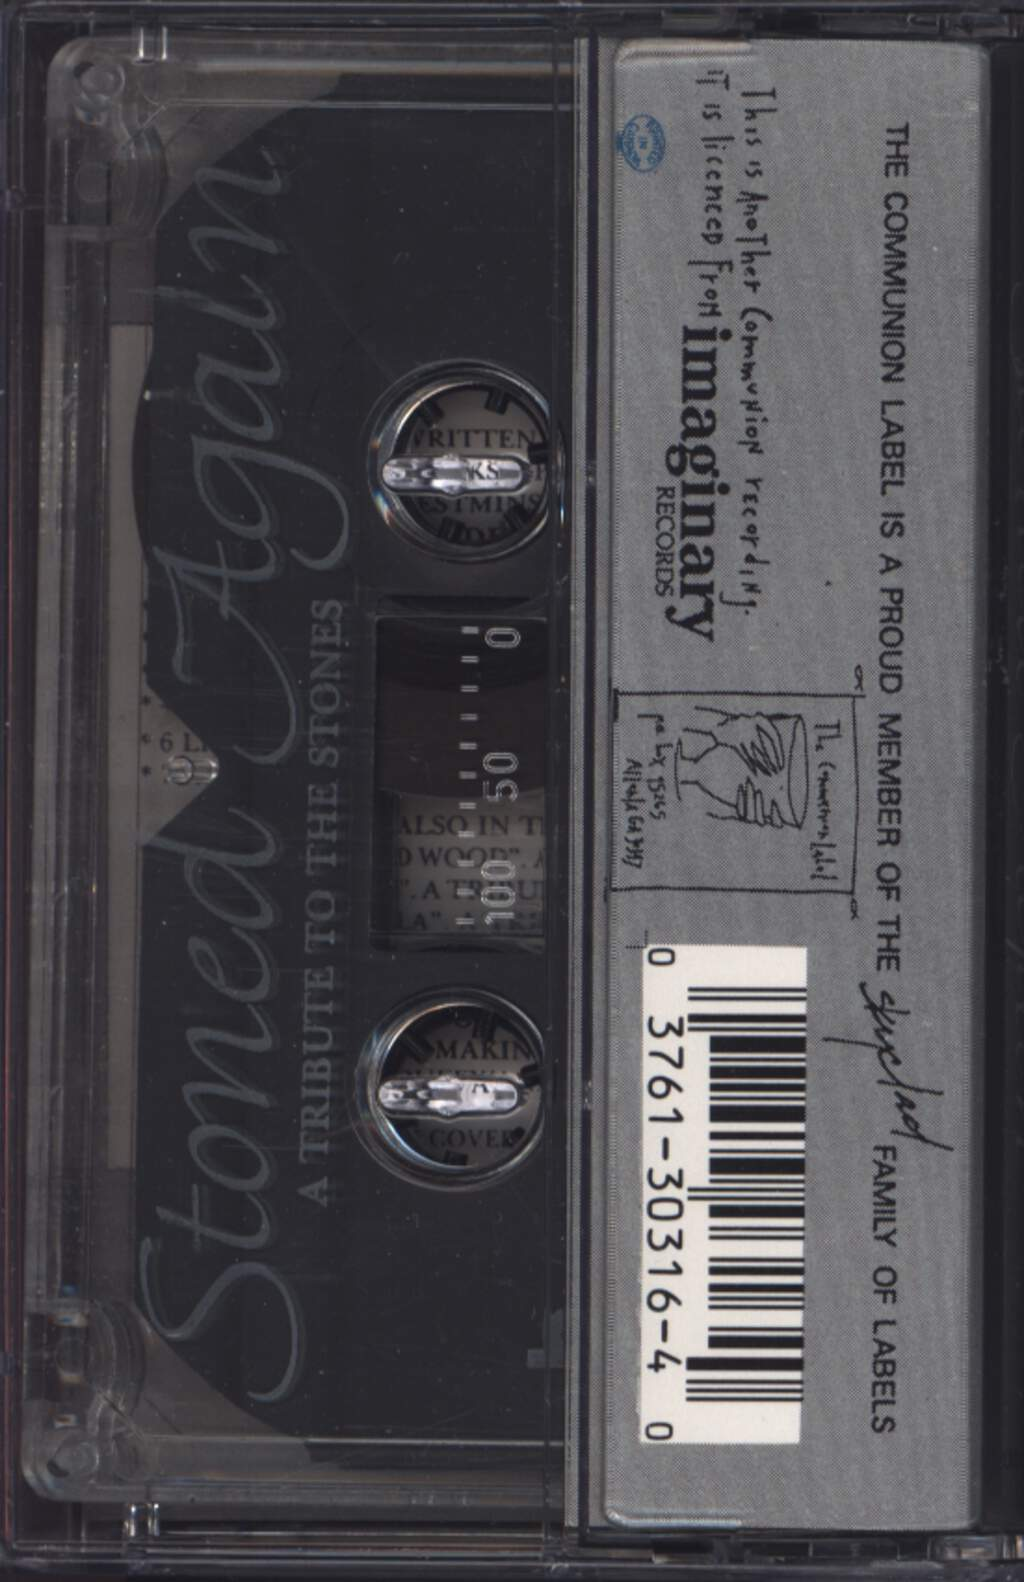 Various: Stoned Again (A Tribute To The Stones), Compact Cassette